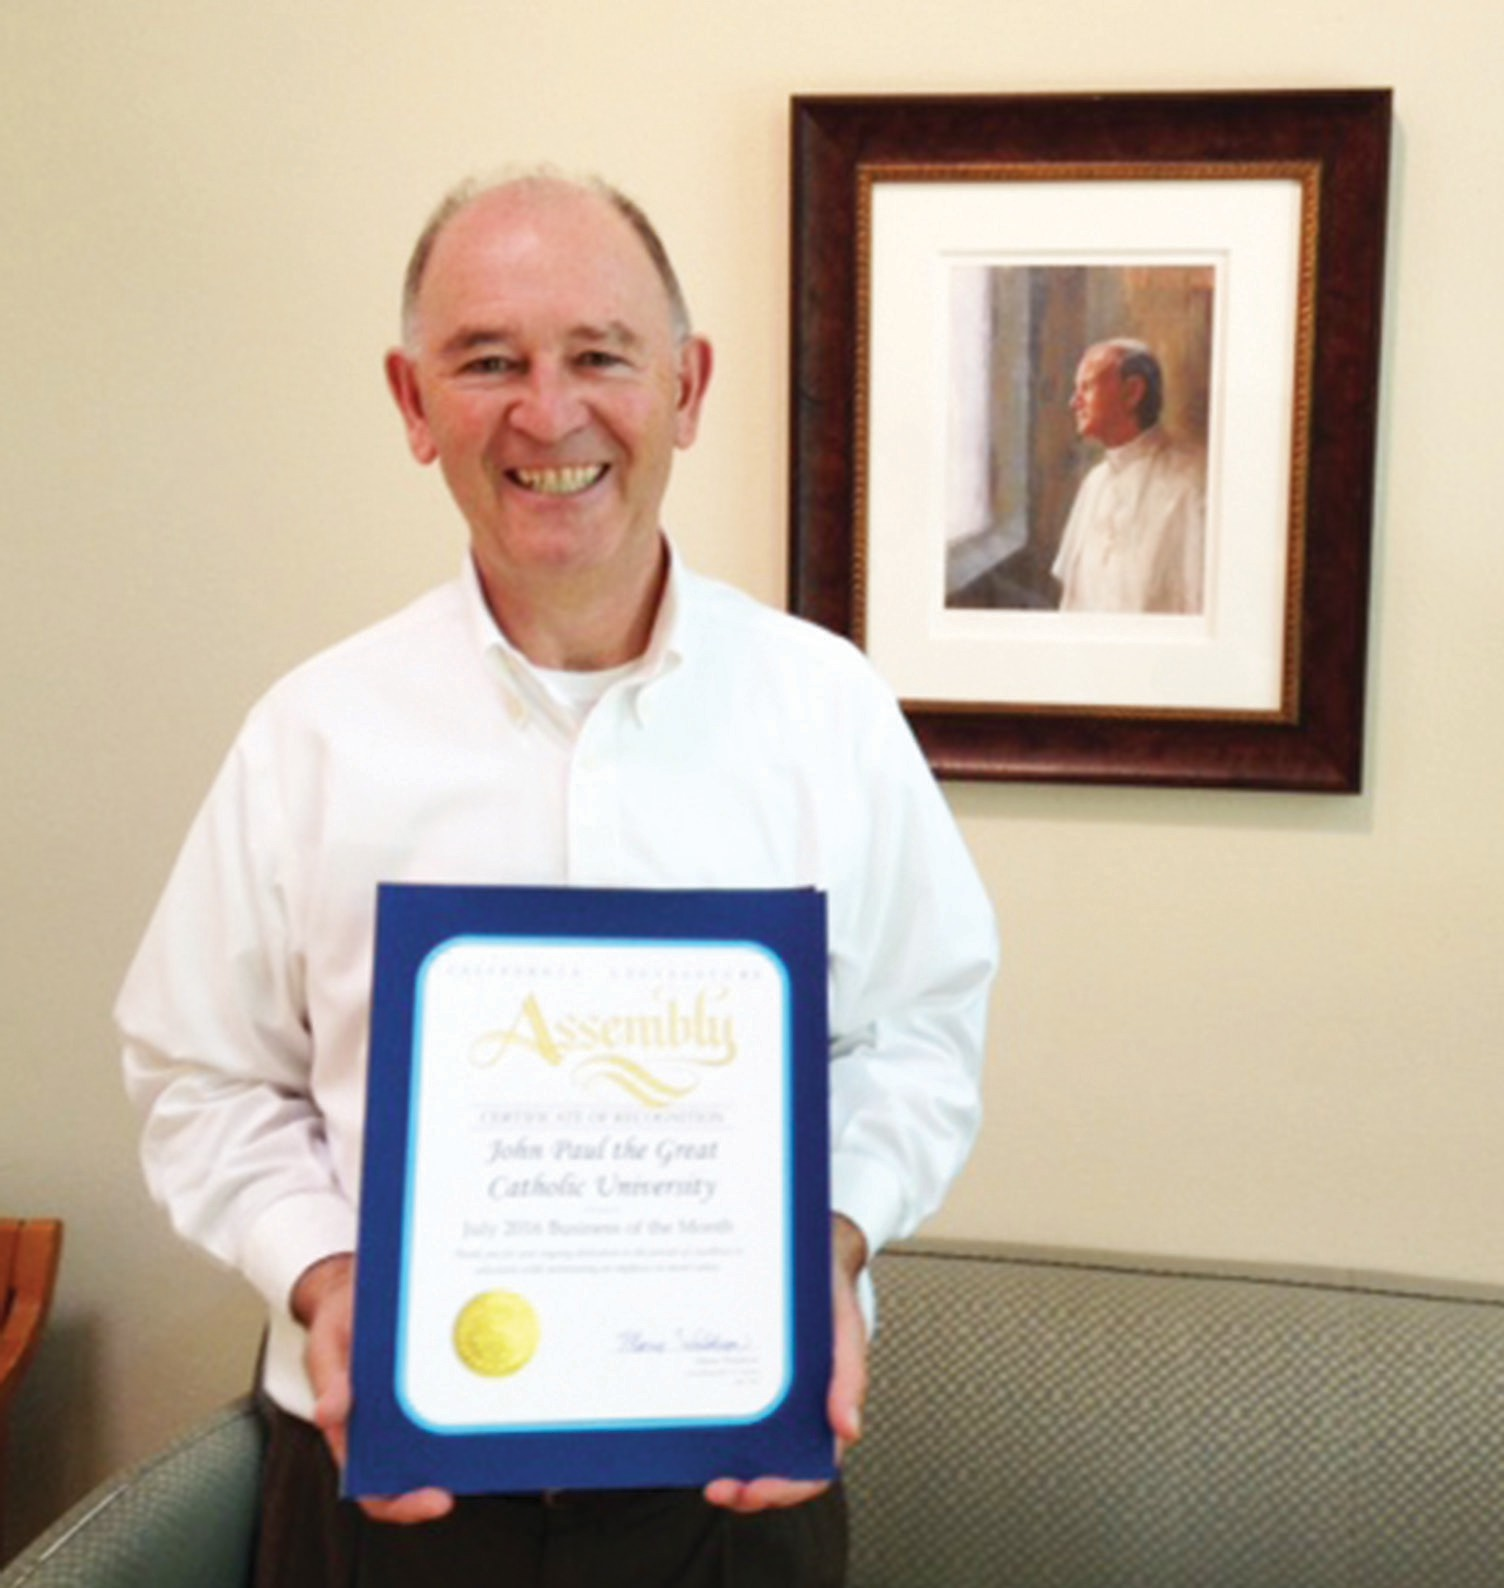 President Dr. Derry Connolly accepts a certificate from Assemblywoman Marie Waldron designating John Paul the Great Catholic University Business of the Month for July, 2016.